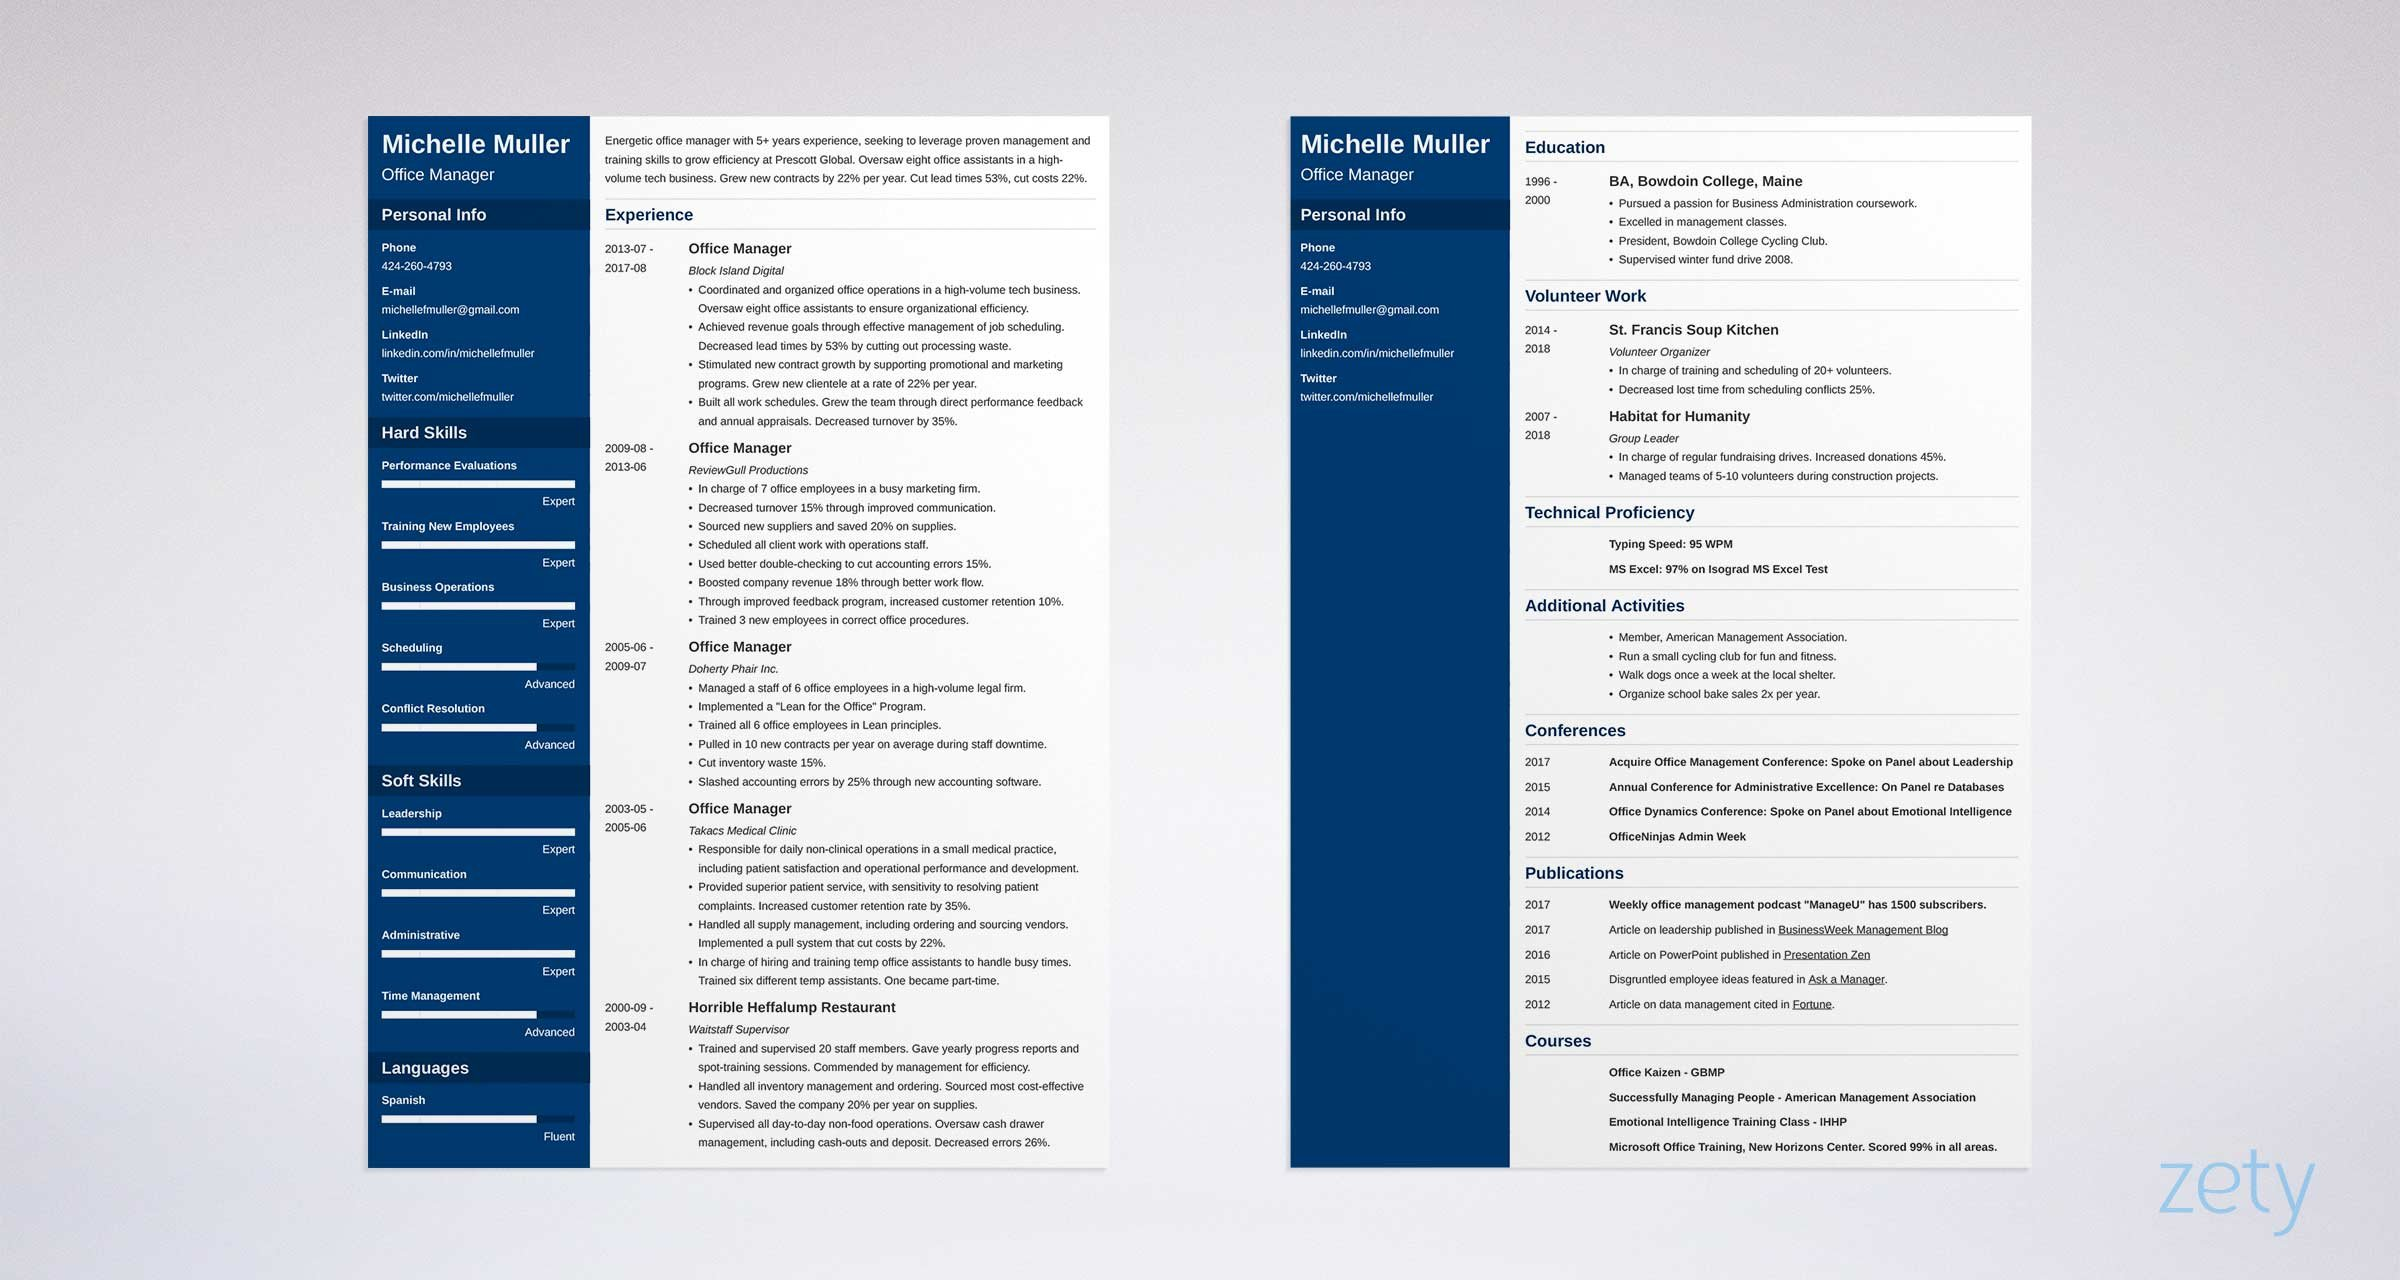 How Many Pages Resume.How Many Pages Your Resume Should Be Resume Examples